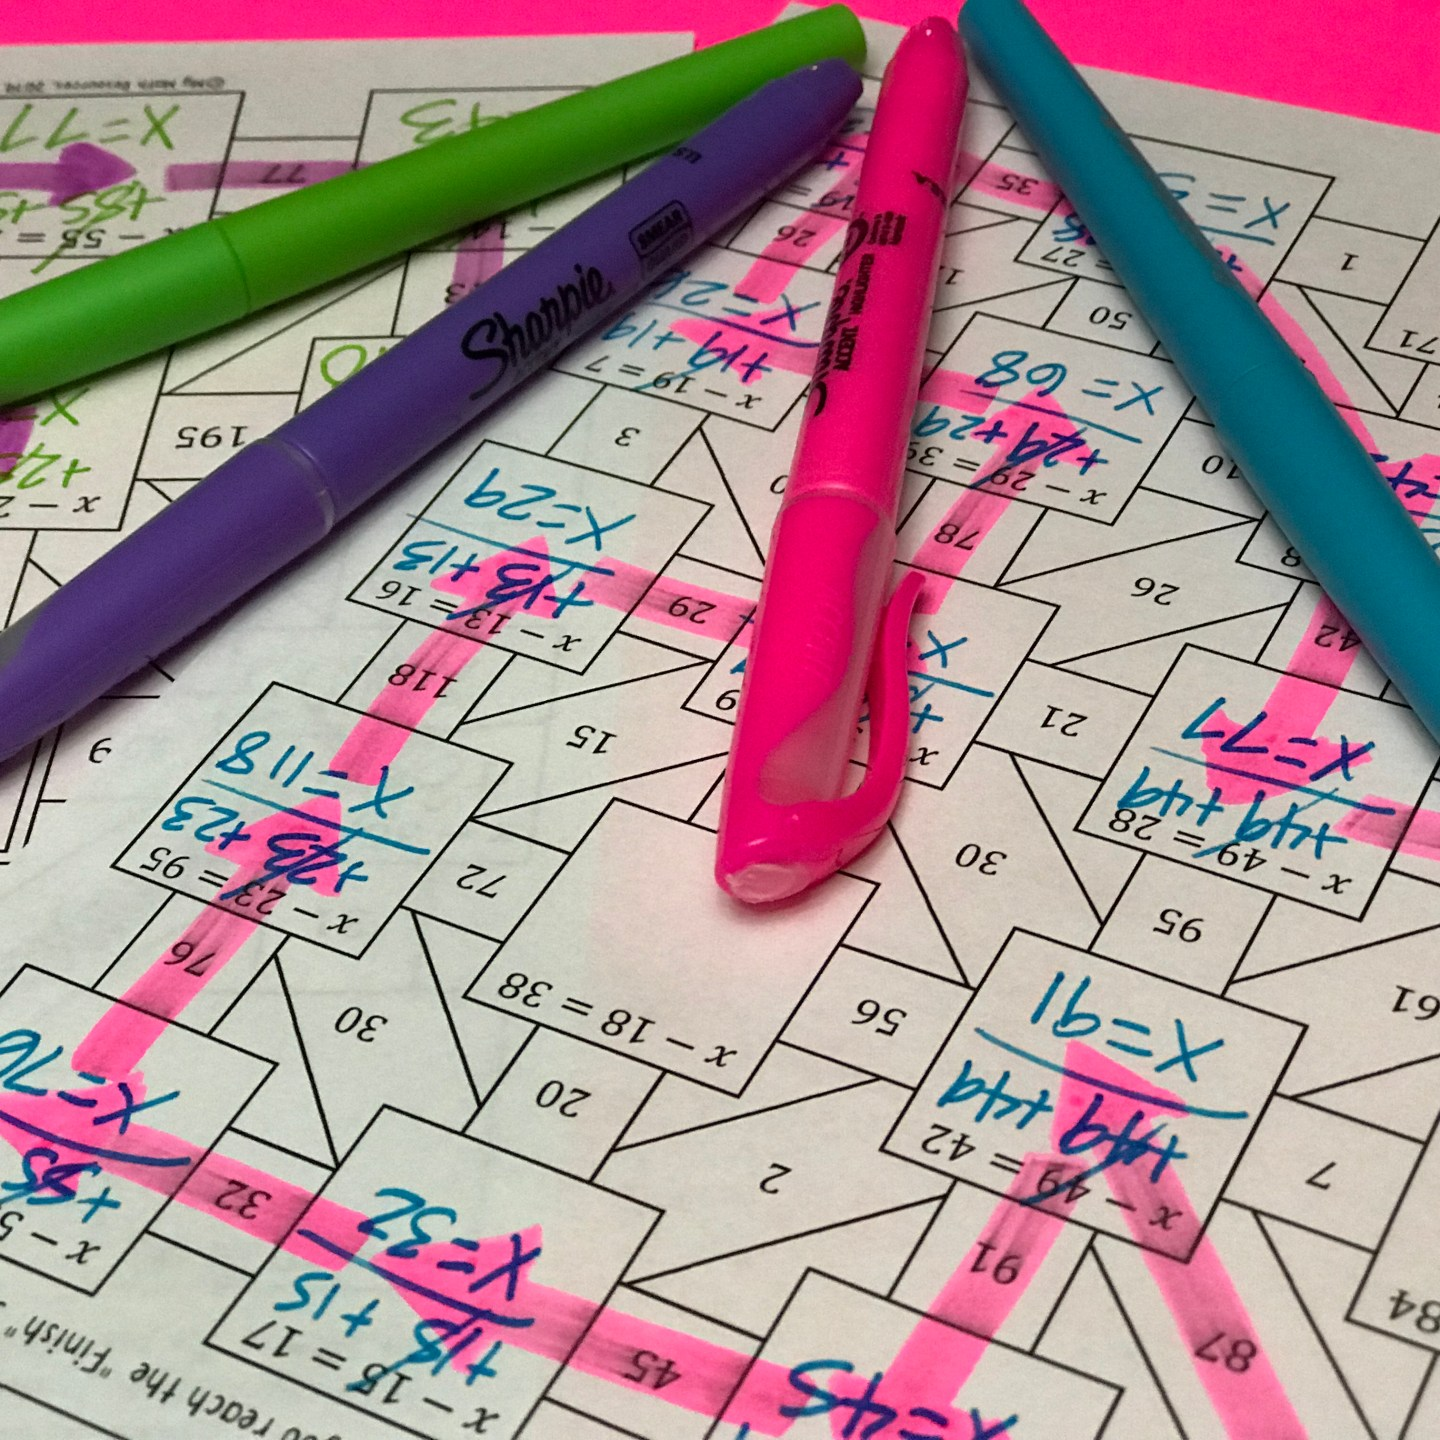 Fun Maze for Subtraction Equations Practice! 5th, 6th, and 7th Grade Math Students will LOVE this! Replace that boring worksheet. Perfect for practice or review before a test! #math #teacher #mathteacher #algebra #geometry #percent #decimal #fractions #middleschool #jrhigh #conversions #review #test #quiz #6th #7th #8th #grade #activity #tpt #teacherspayteachers #teacherlife #student #education